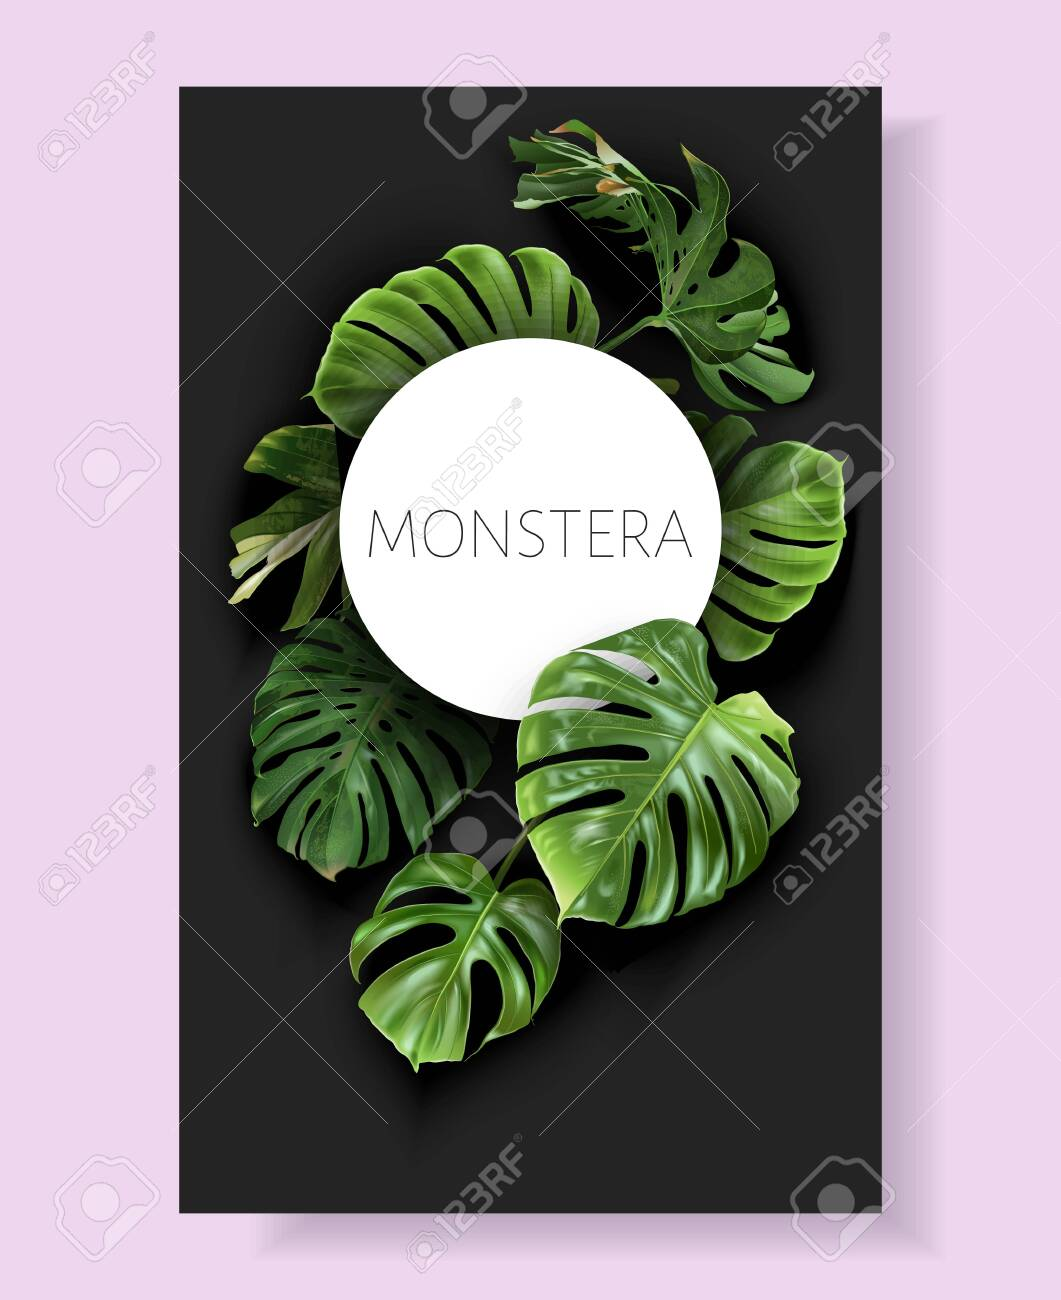 Vector monstera frame with green tropical leaves - 153377118